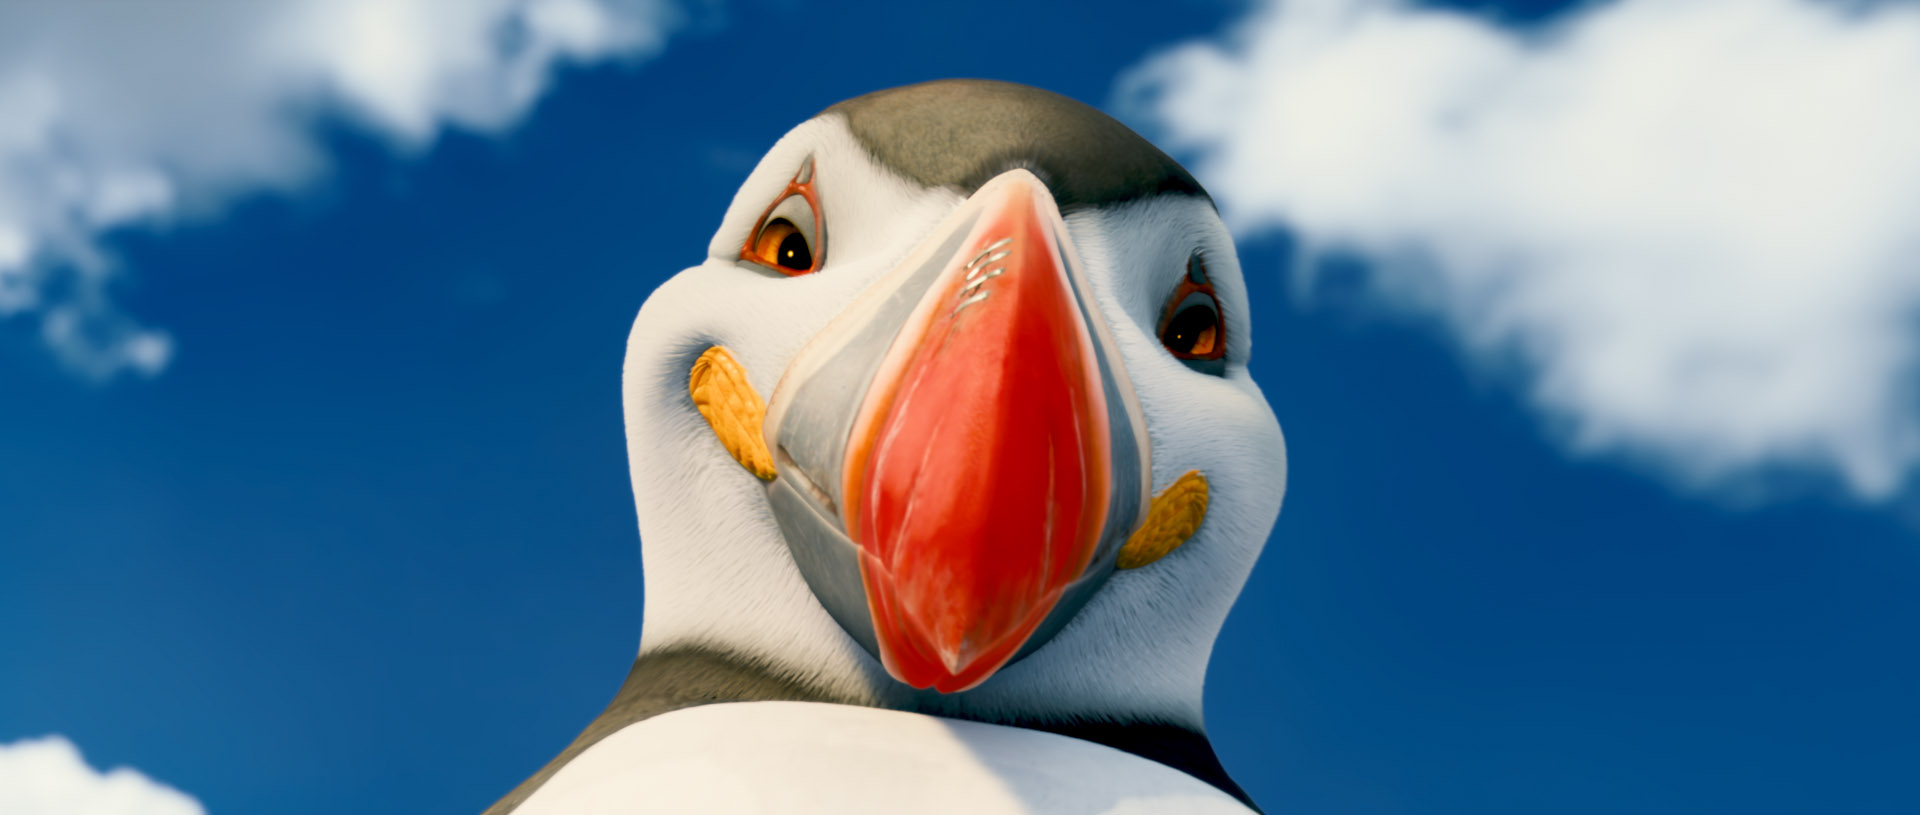 how does happy feet explore belonging A page for describing ymmv: happy feet follow tv tropes browse tv tropes community showcase explore more page actions watch random ymmv.